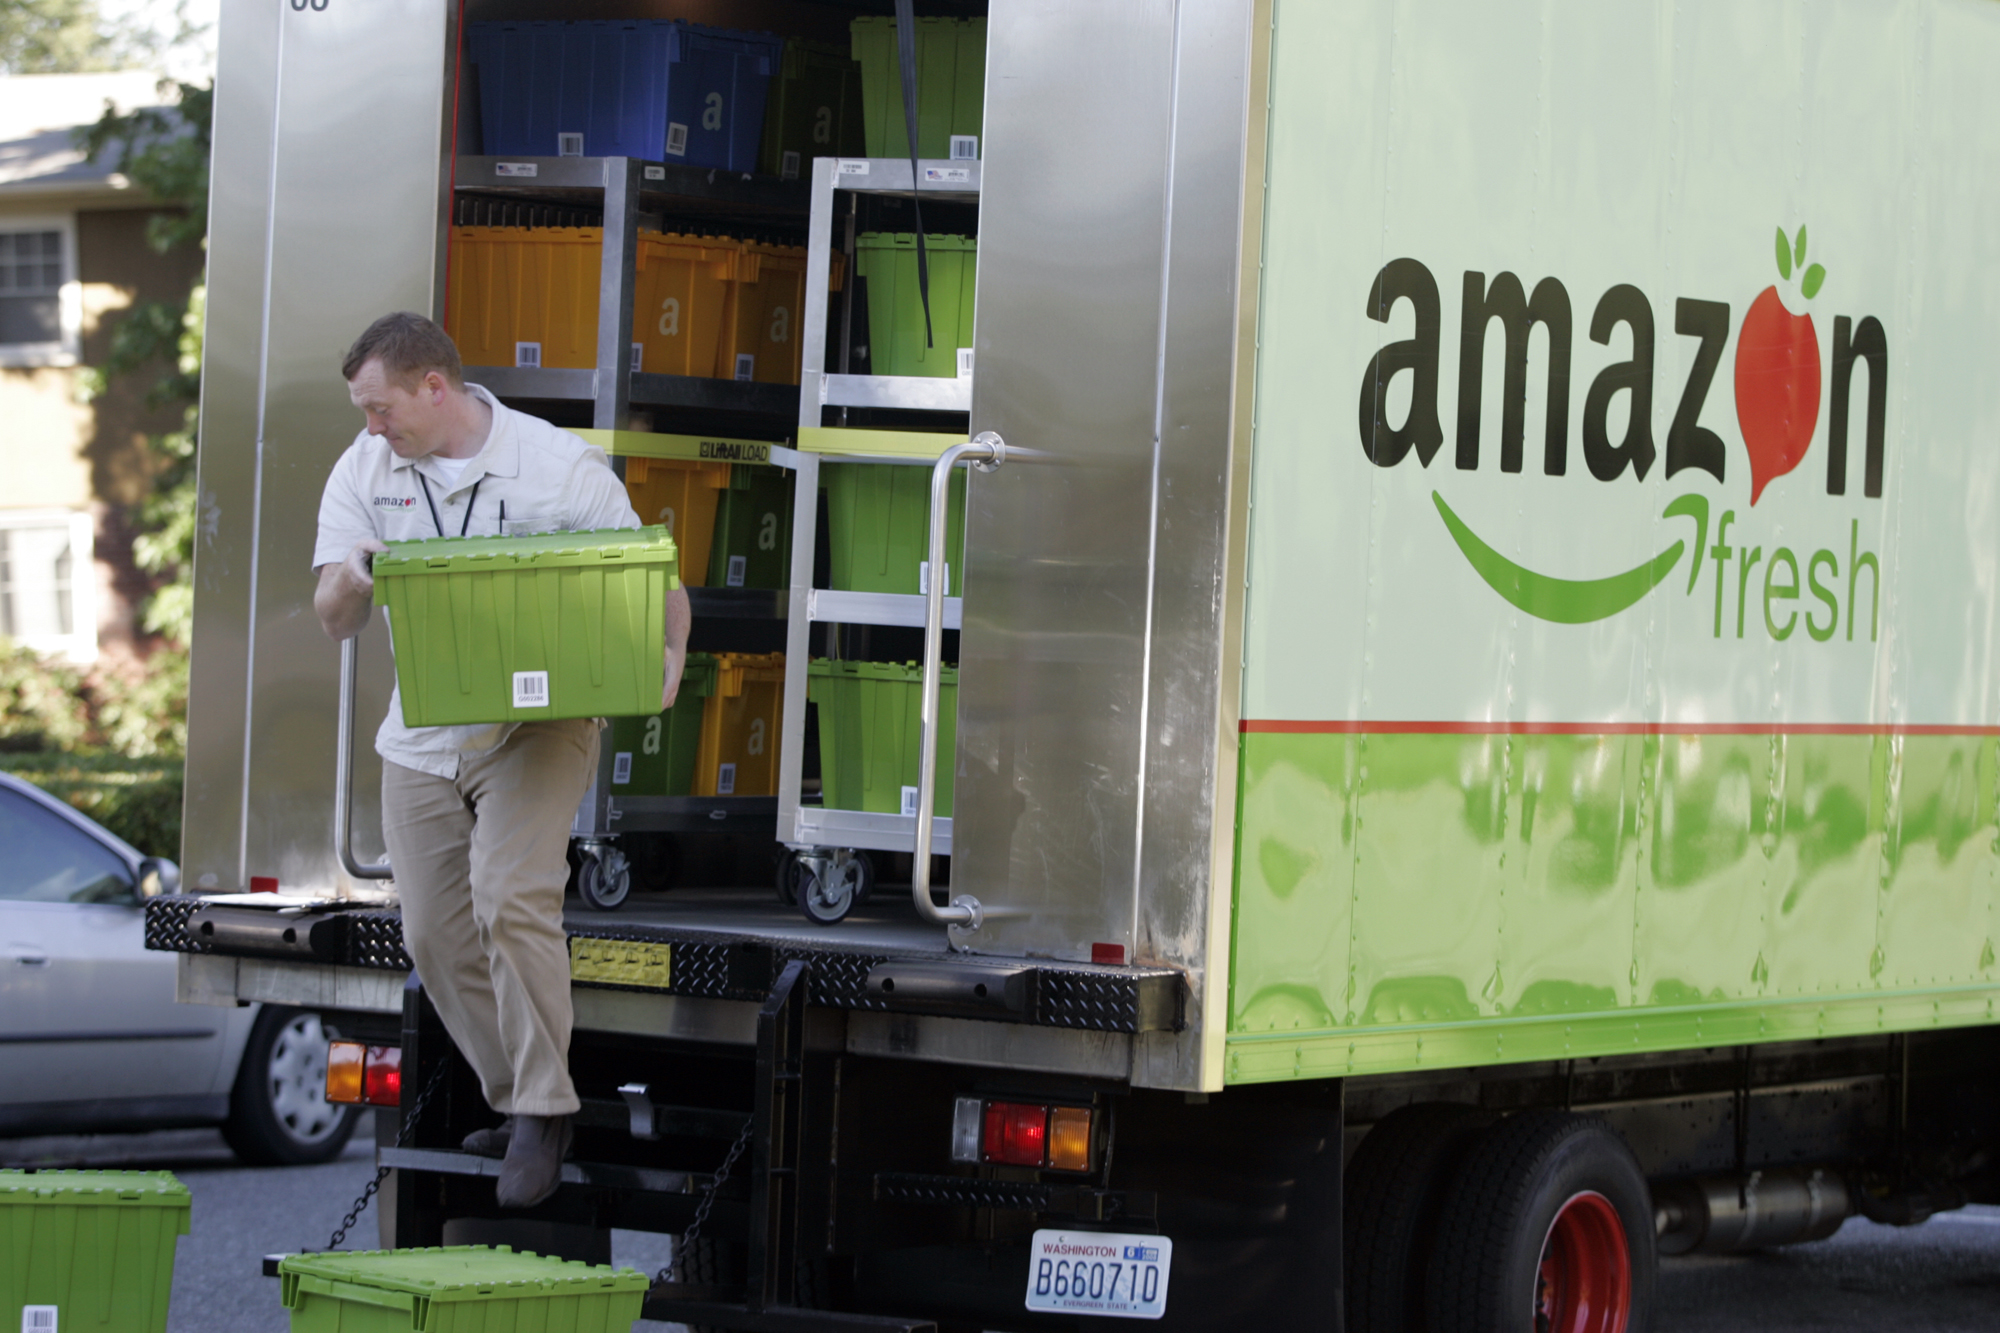 SNAP members will soon get to use food stamps to order groceries through online retailers like Amazon.